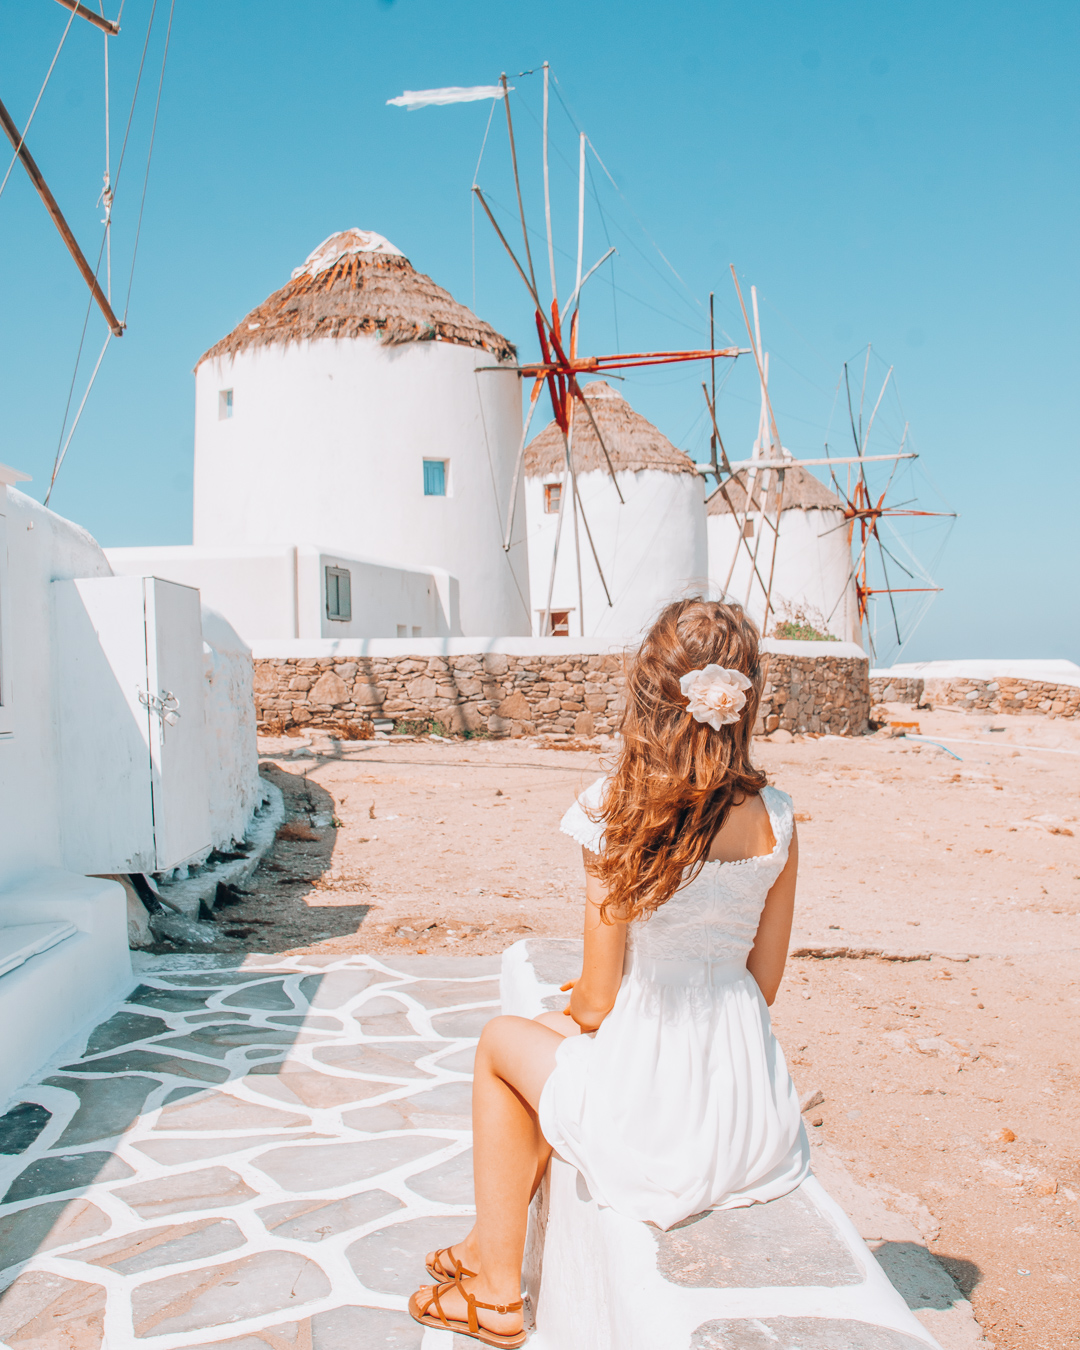 Girl looking at the windmills in Mykonos